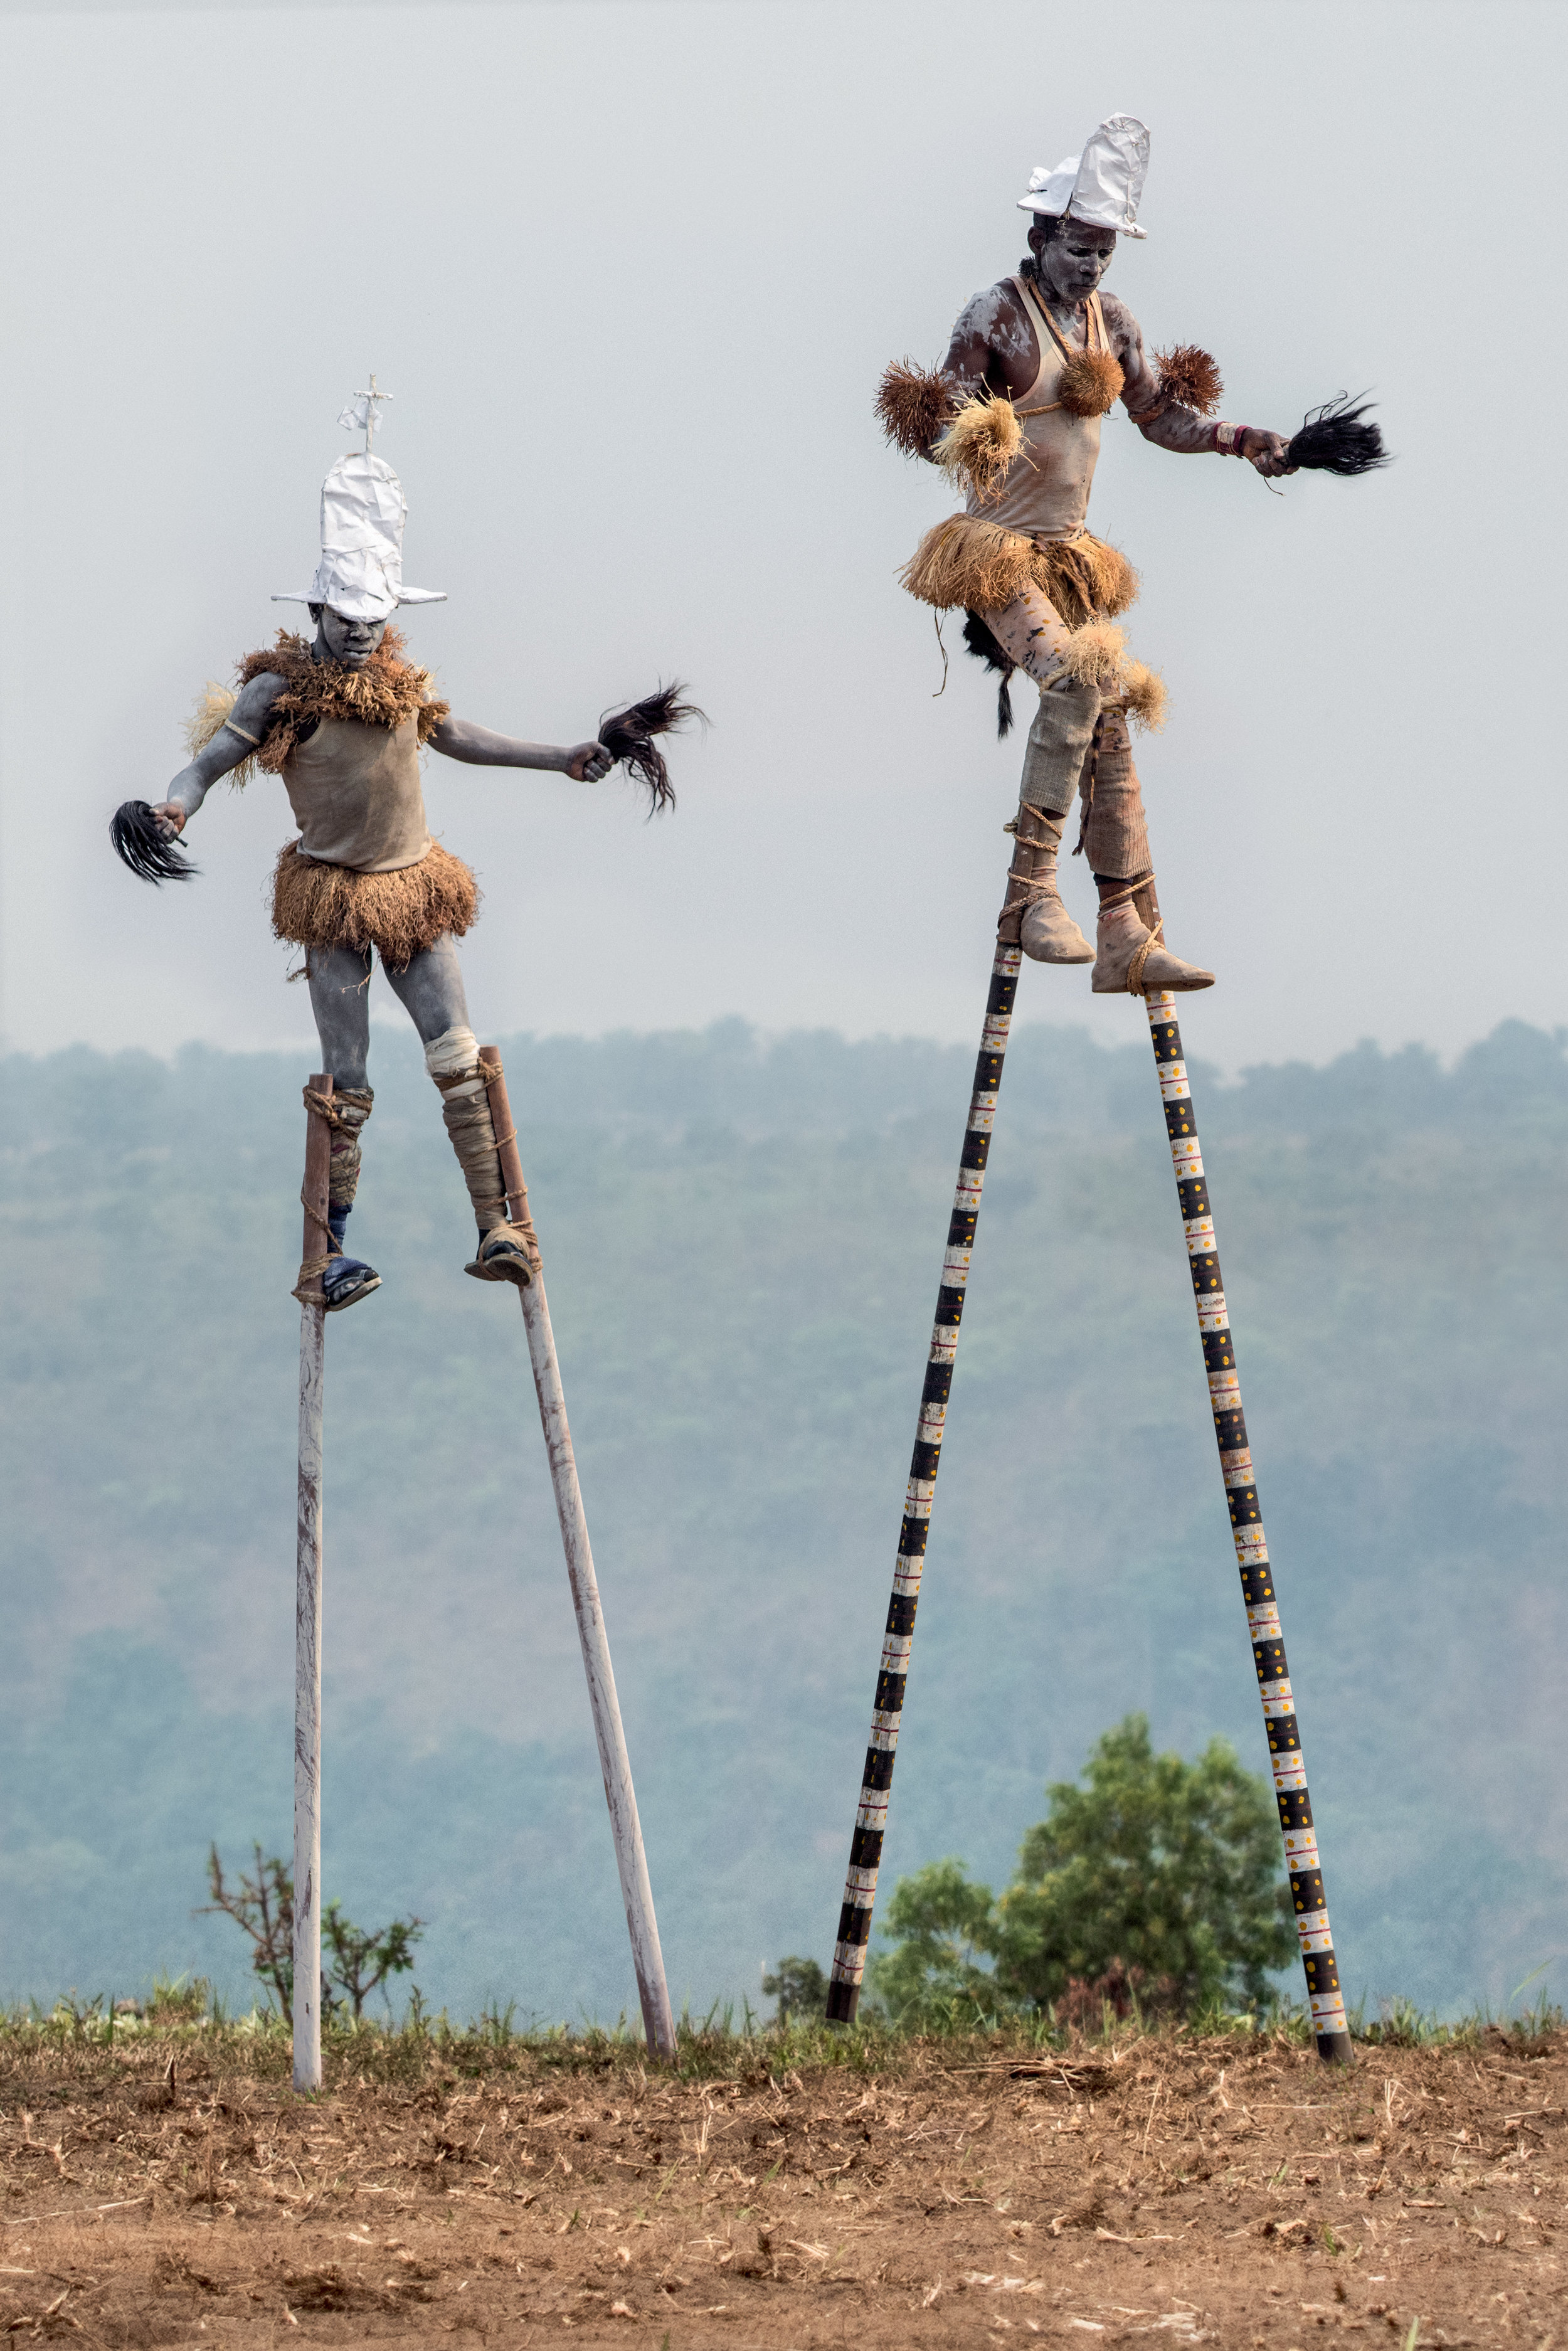 """Tu-gangonga stilt dancers called, """"Tall Men Walking,"""" come frothier village to entertain the chief. © African Twilight: The Vanishing Cultures and Ceremonies of the African Continent by Carol Beckwith and Angela Fisher, Rizzoli, 2018."""